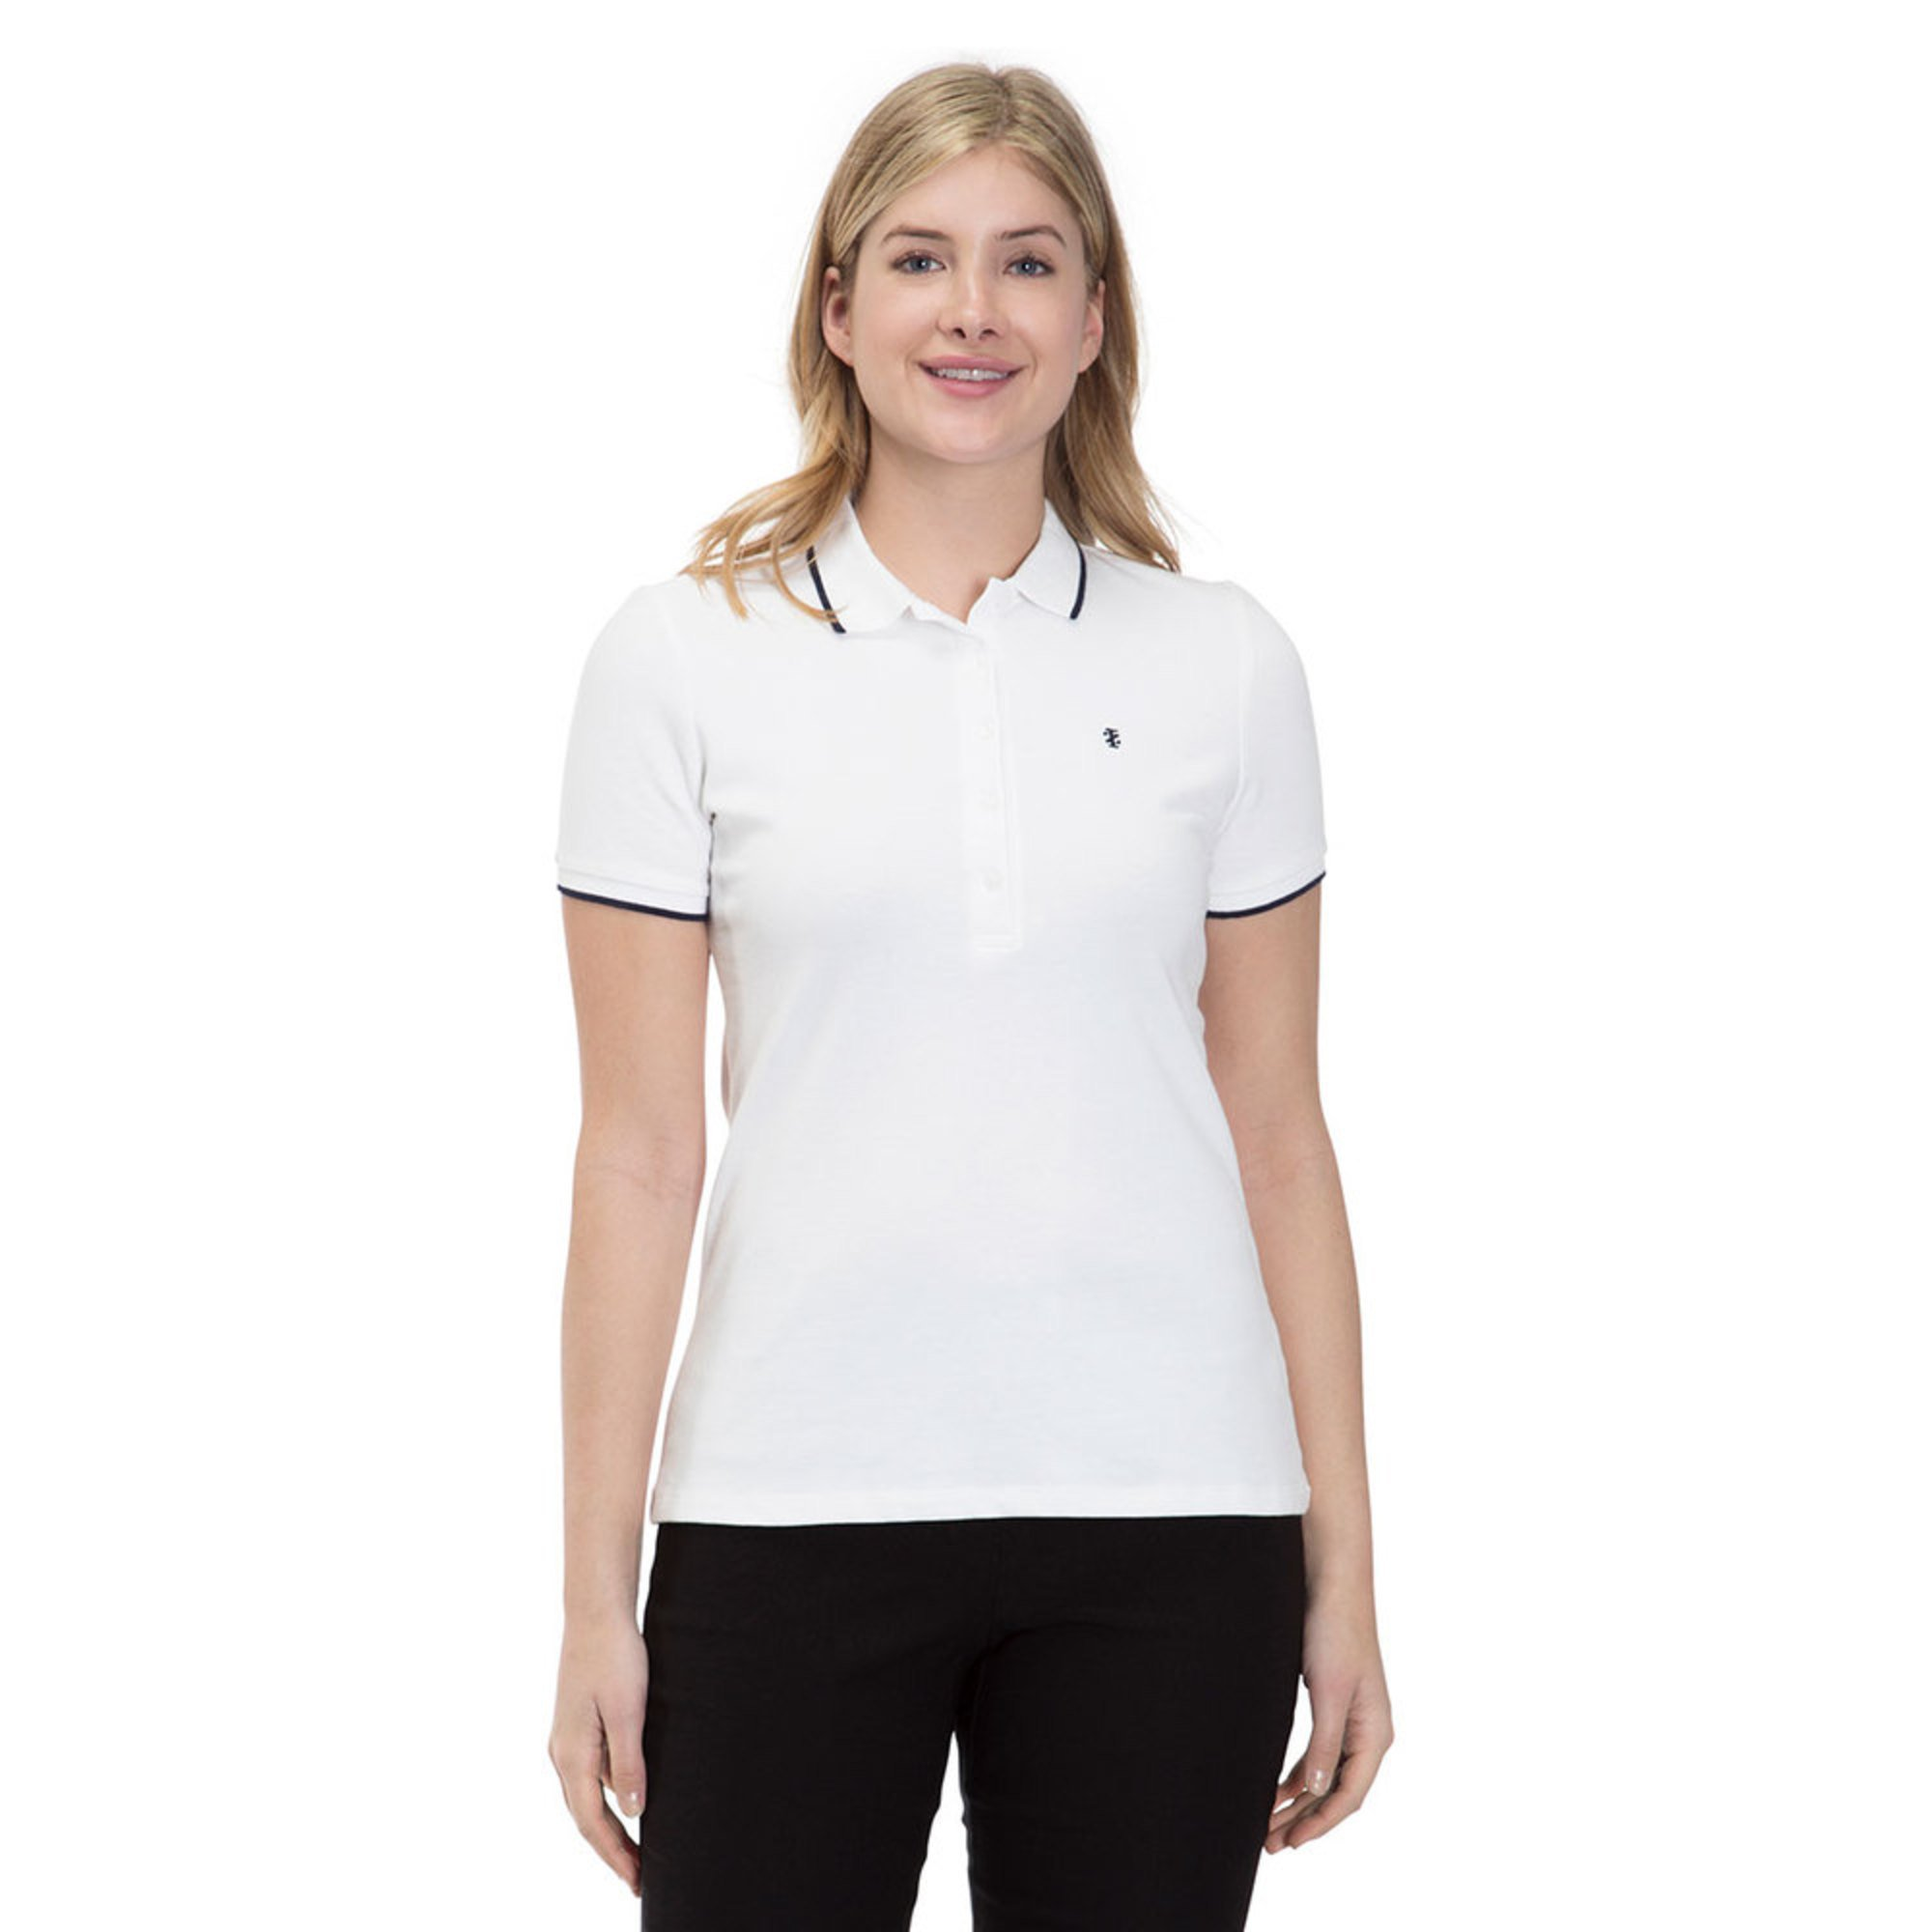 Izod Womens Solid Slim Fit Polo In Bright White Casual Dress